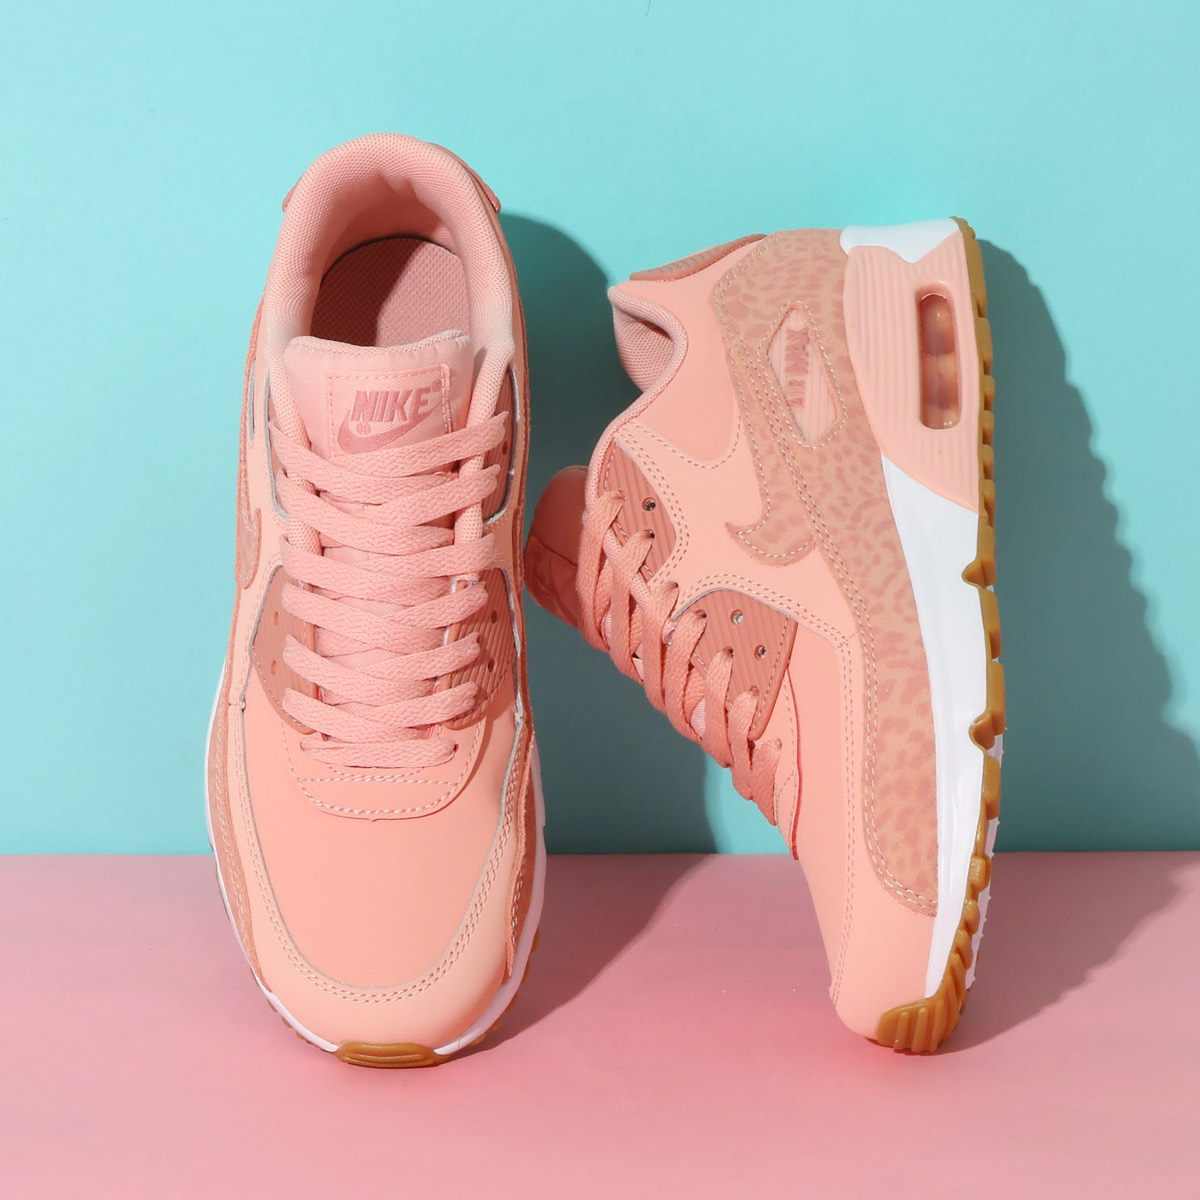 NIKE AIR MAX 90 LTR SE GG (Kie Ney AMAX 90 leather SE GS) (CORAL STARDUST/RUST PINK-WHITE) 18SP-I